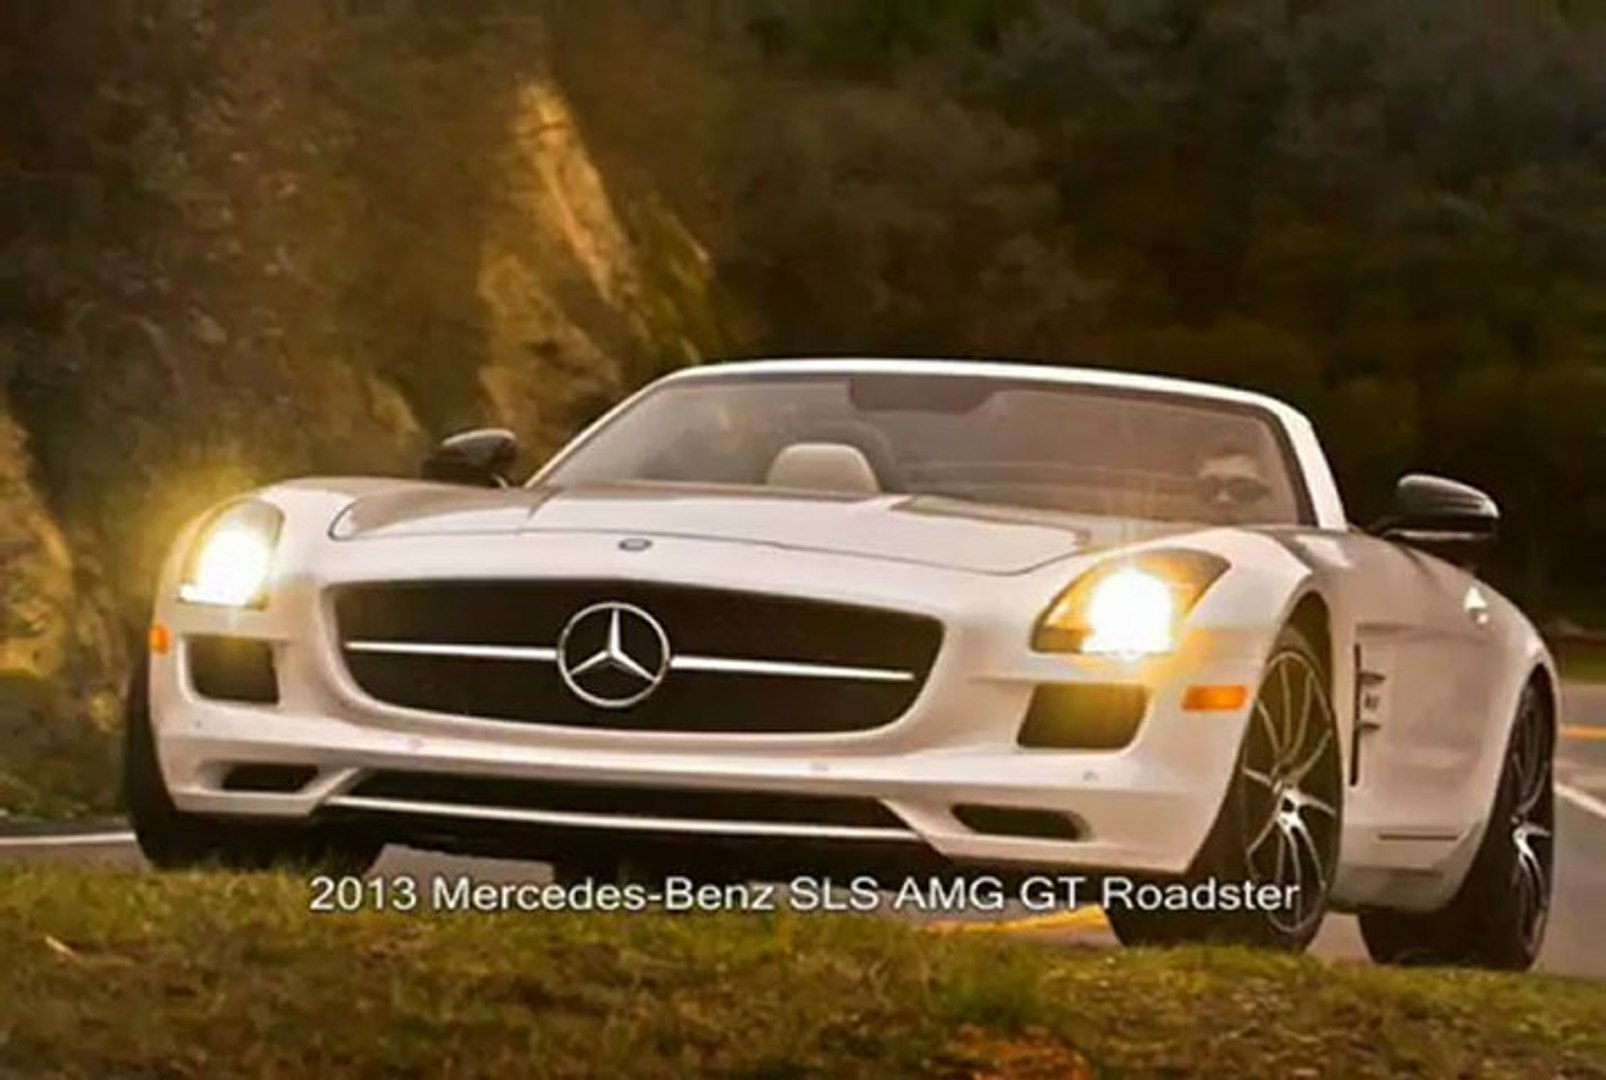 Mercedes Benz Sls Amg Gt Roadster First Look Video Dailymotion